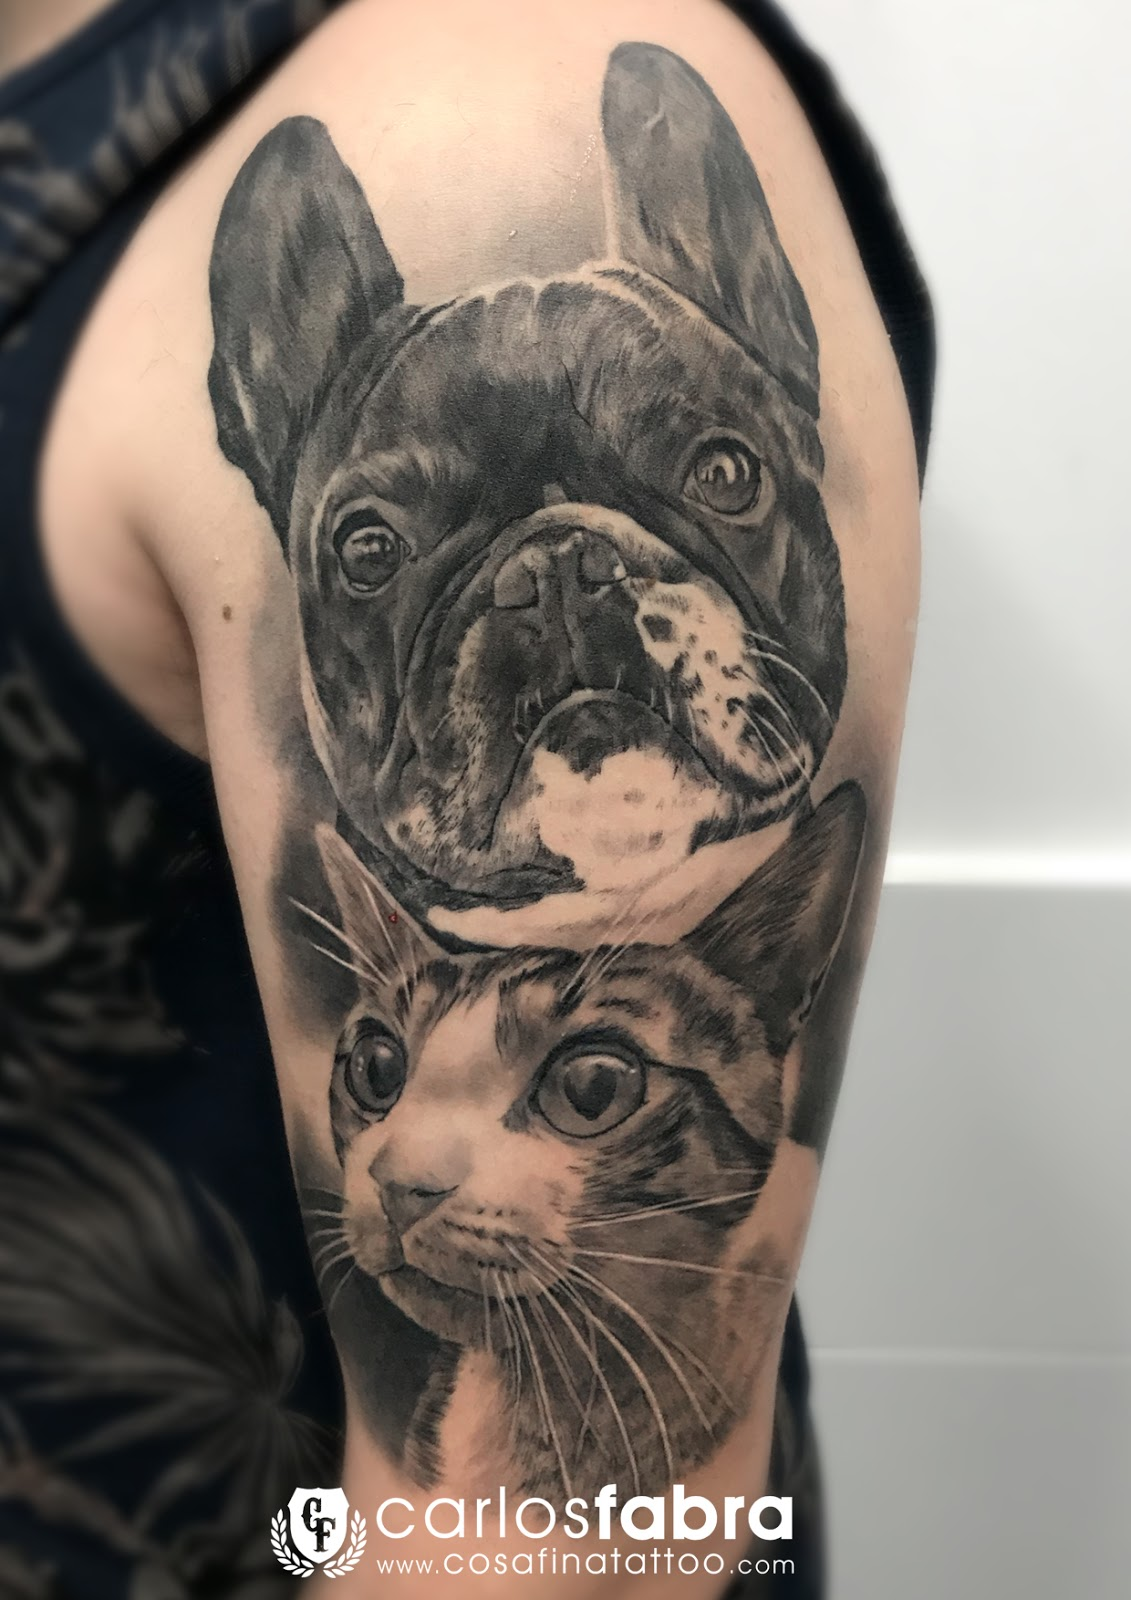 Cosafina Tattoo Carlos Art Studio Tatuaje Tatuajes Tattoo Tattoos